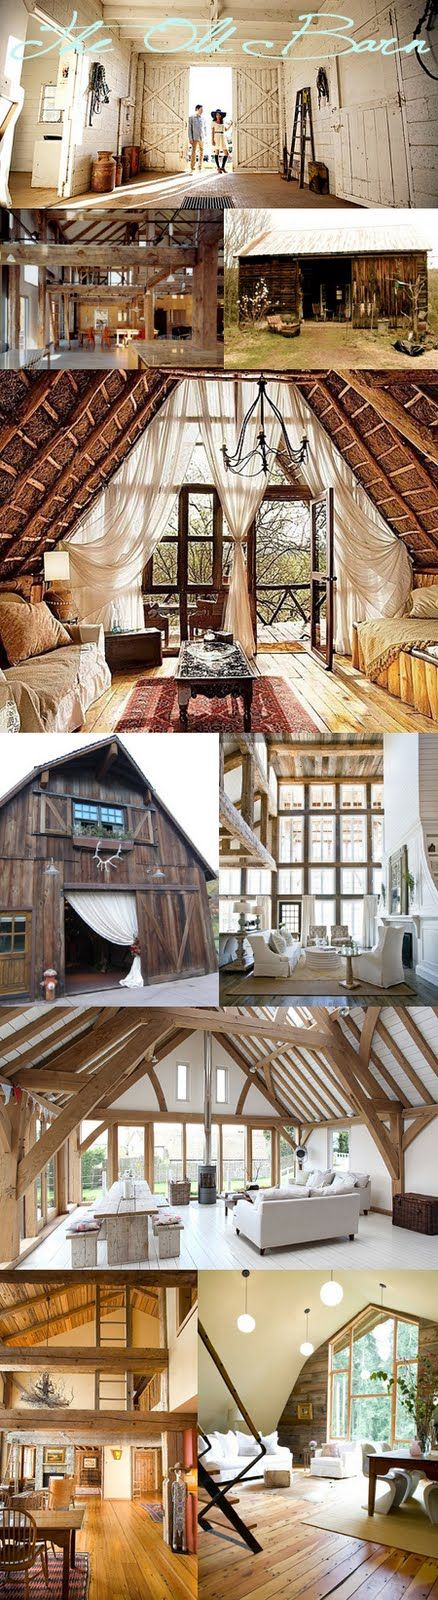 "I wanna live in a barn! That way when someone says ""were to raised in a barn?"" I can say ""yes, yes I was!"""